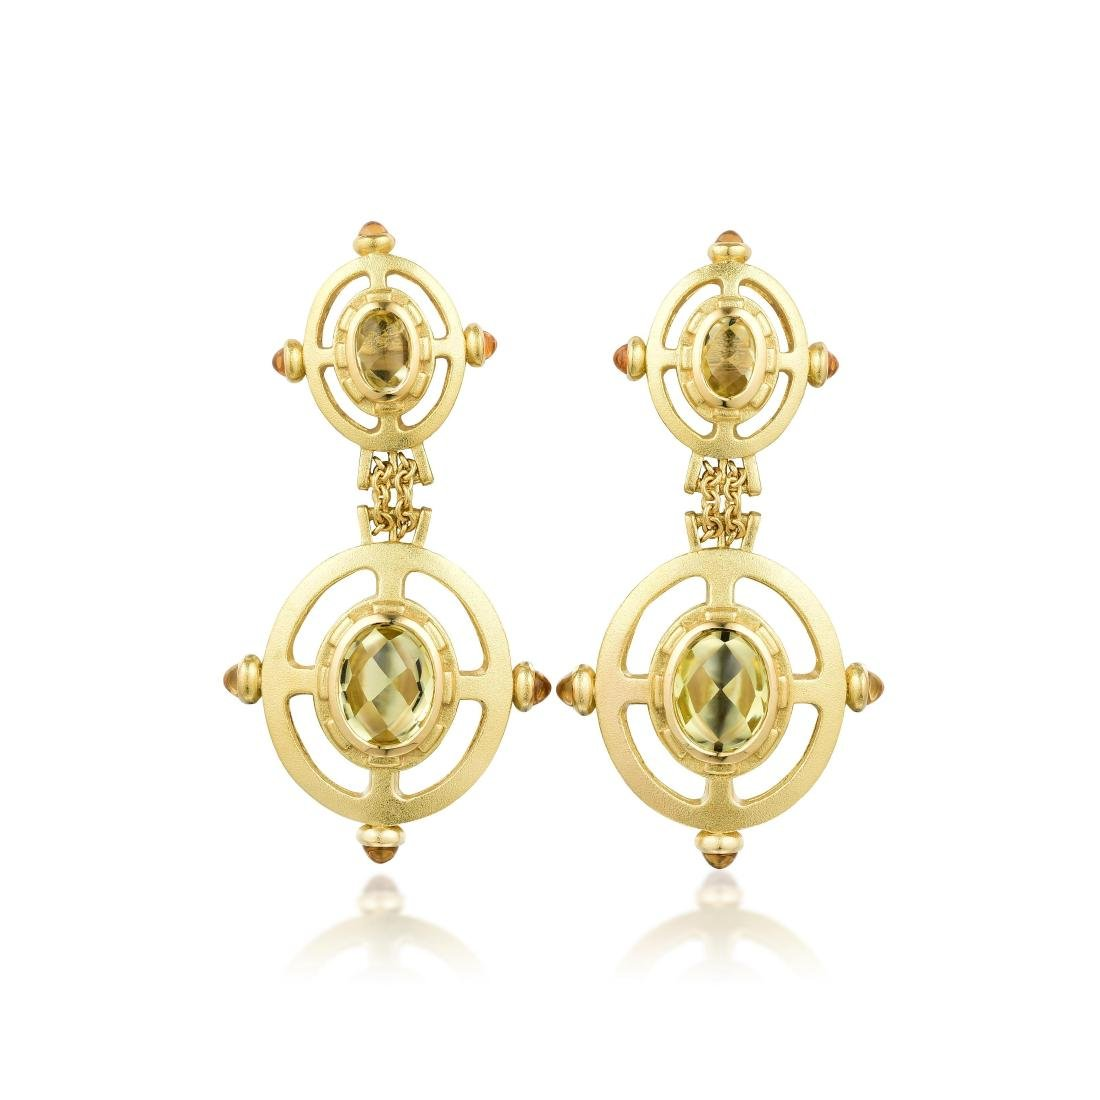 Paul Morelli Citrine and Gold Earrings